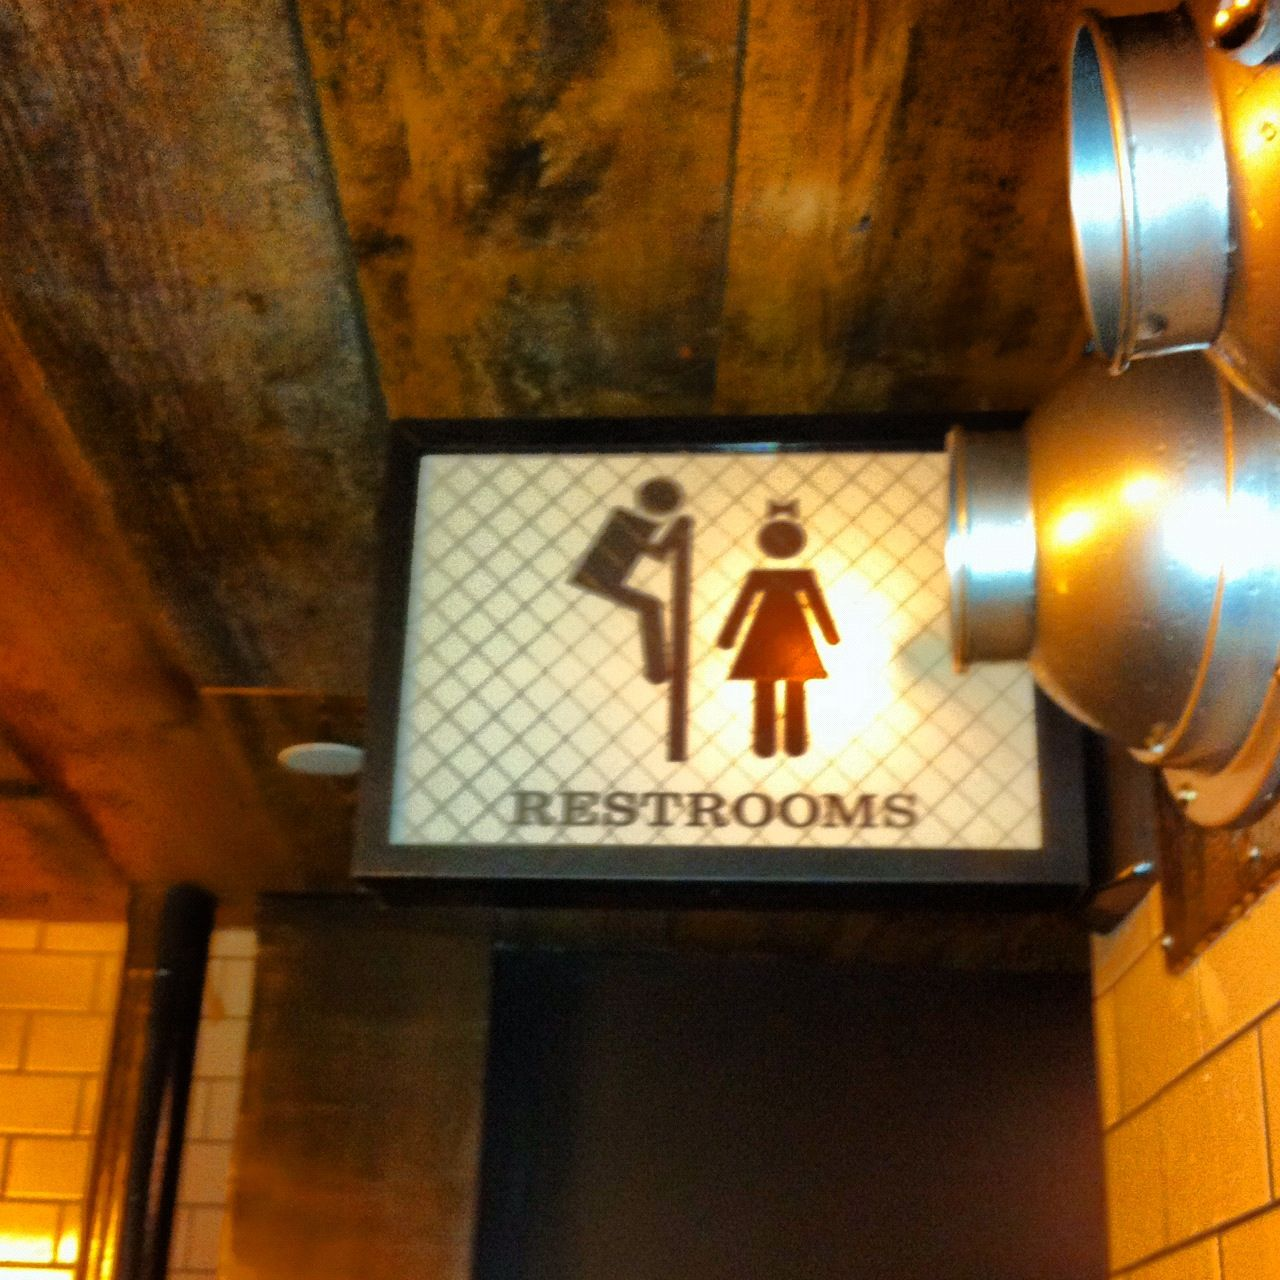 Restaurant Bathroom Signs bathroom sign at the smith restaurant in new york | websuccess